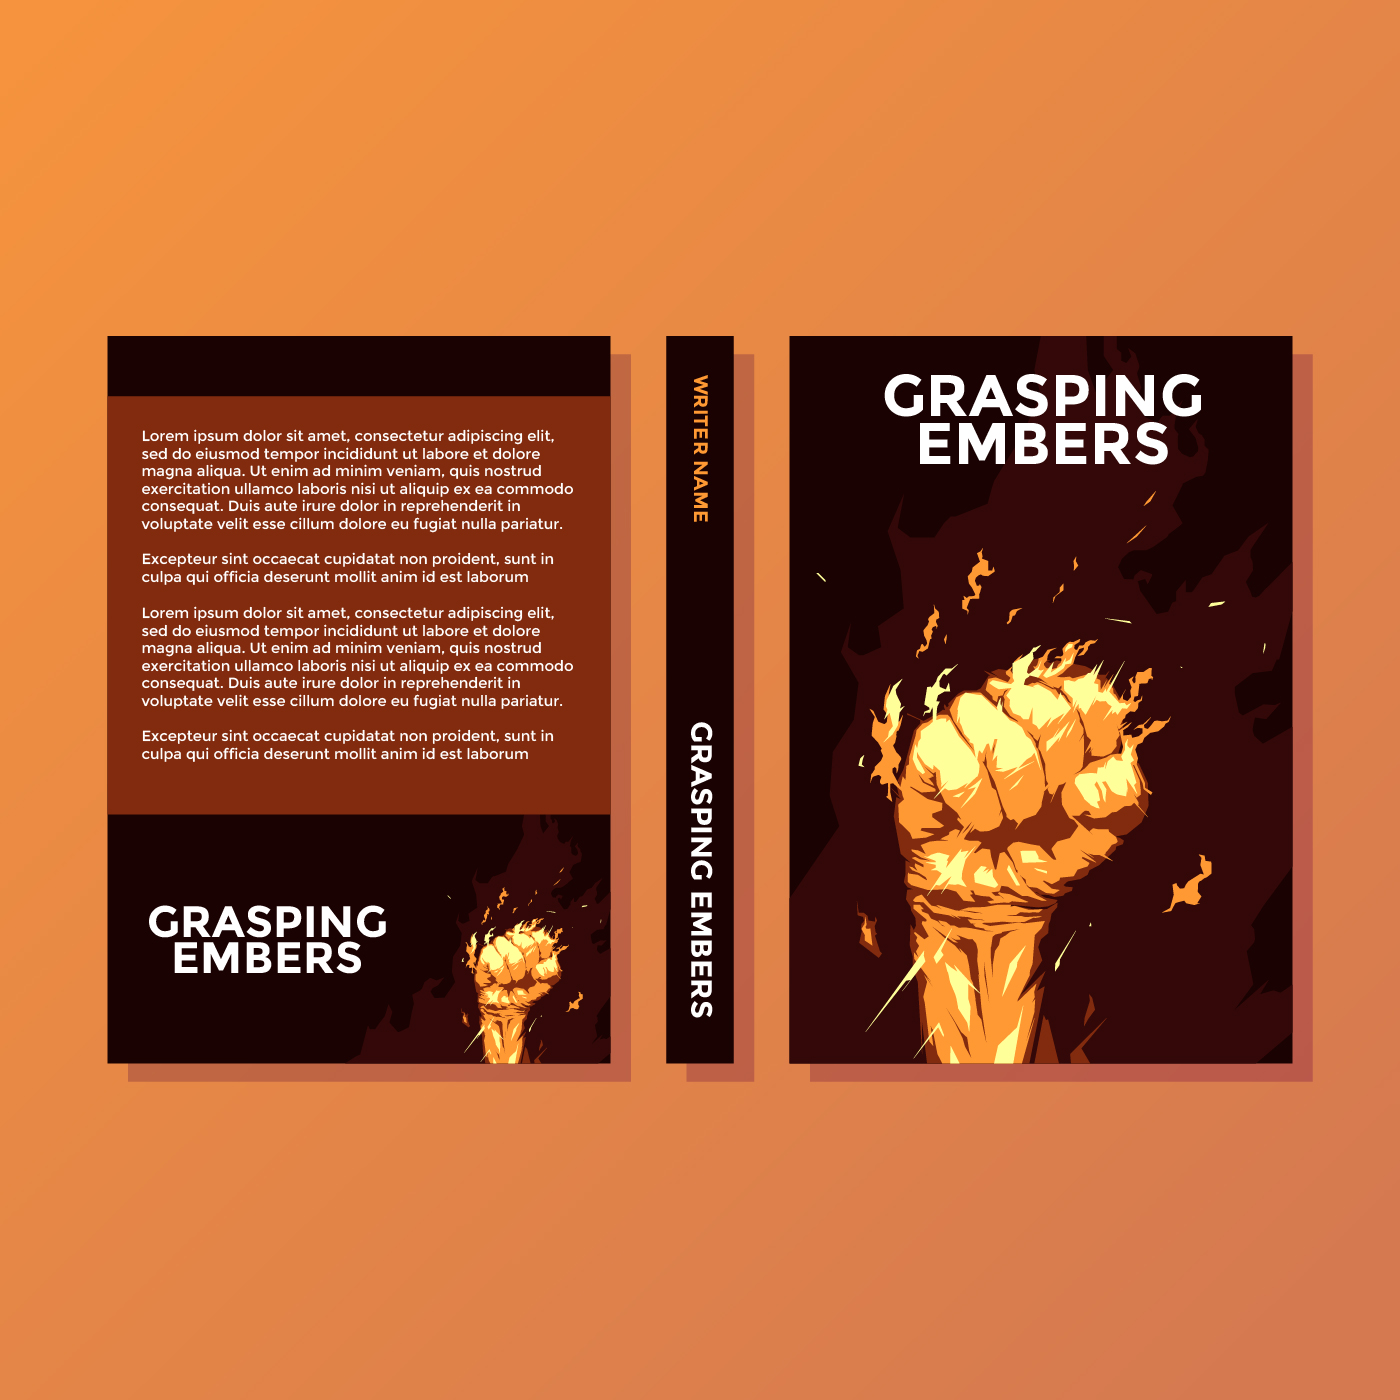 Grasping Embers Motivational Book Cover Vector